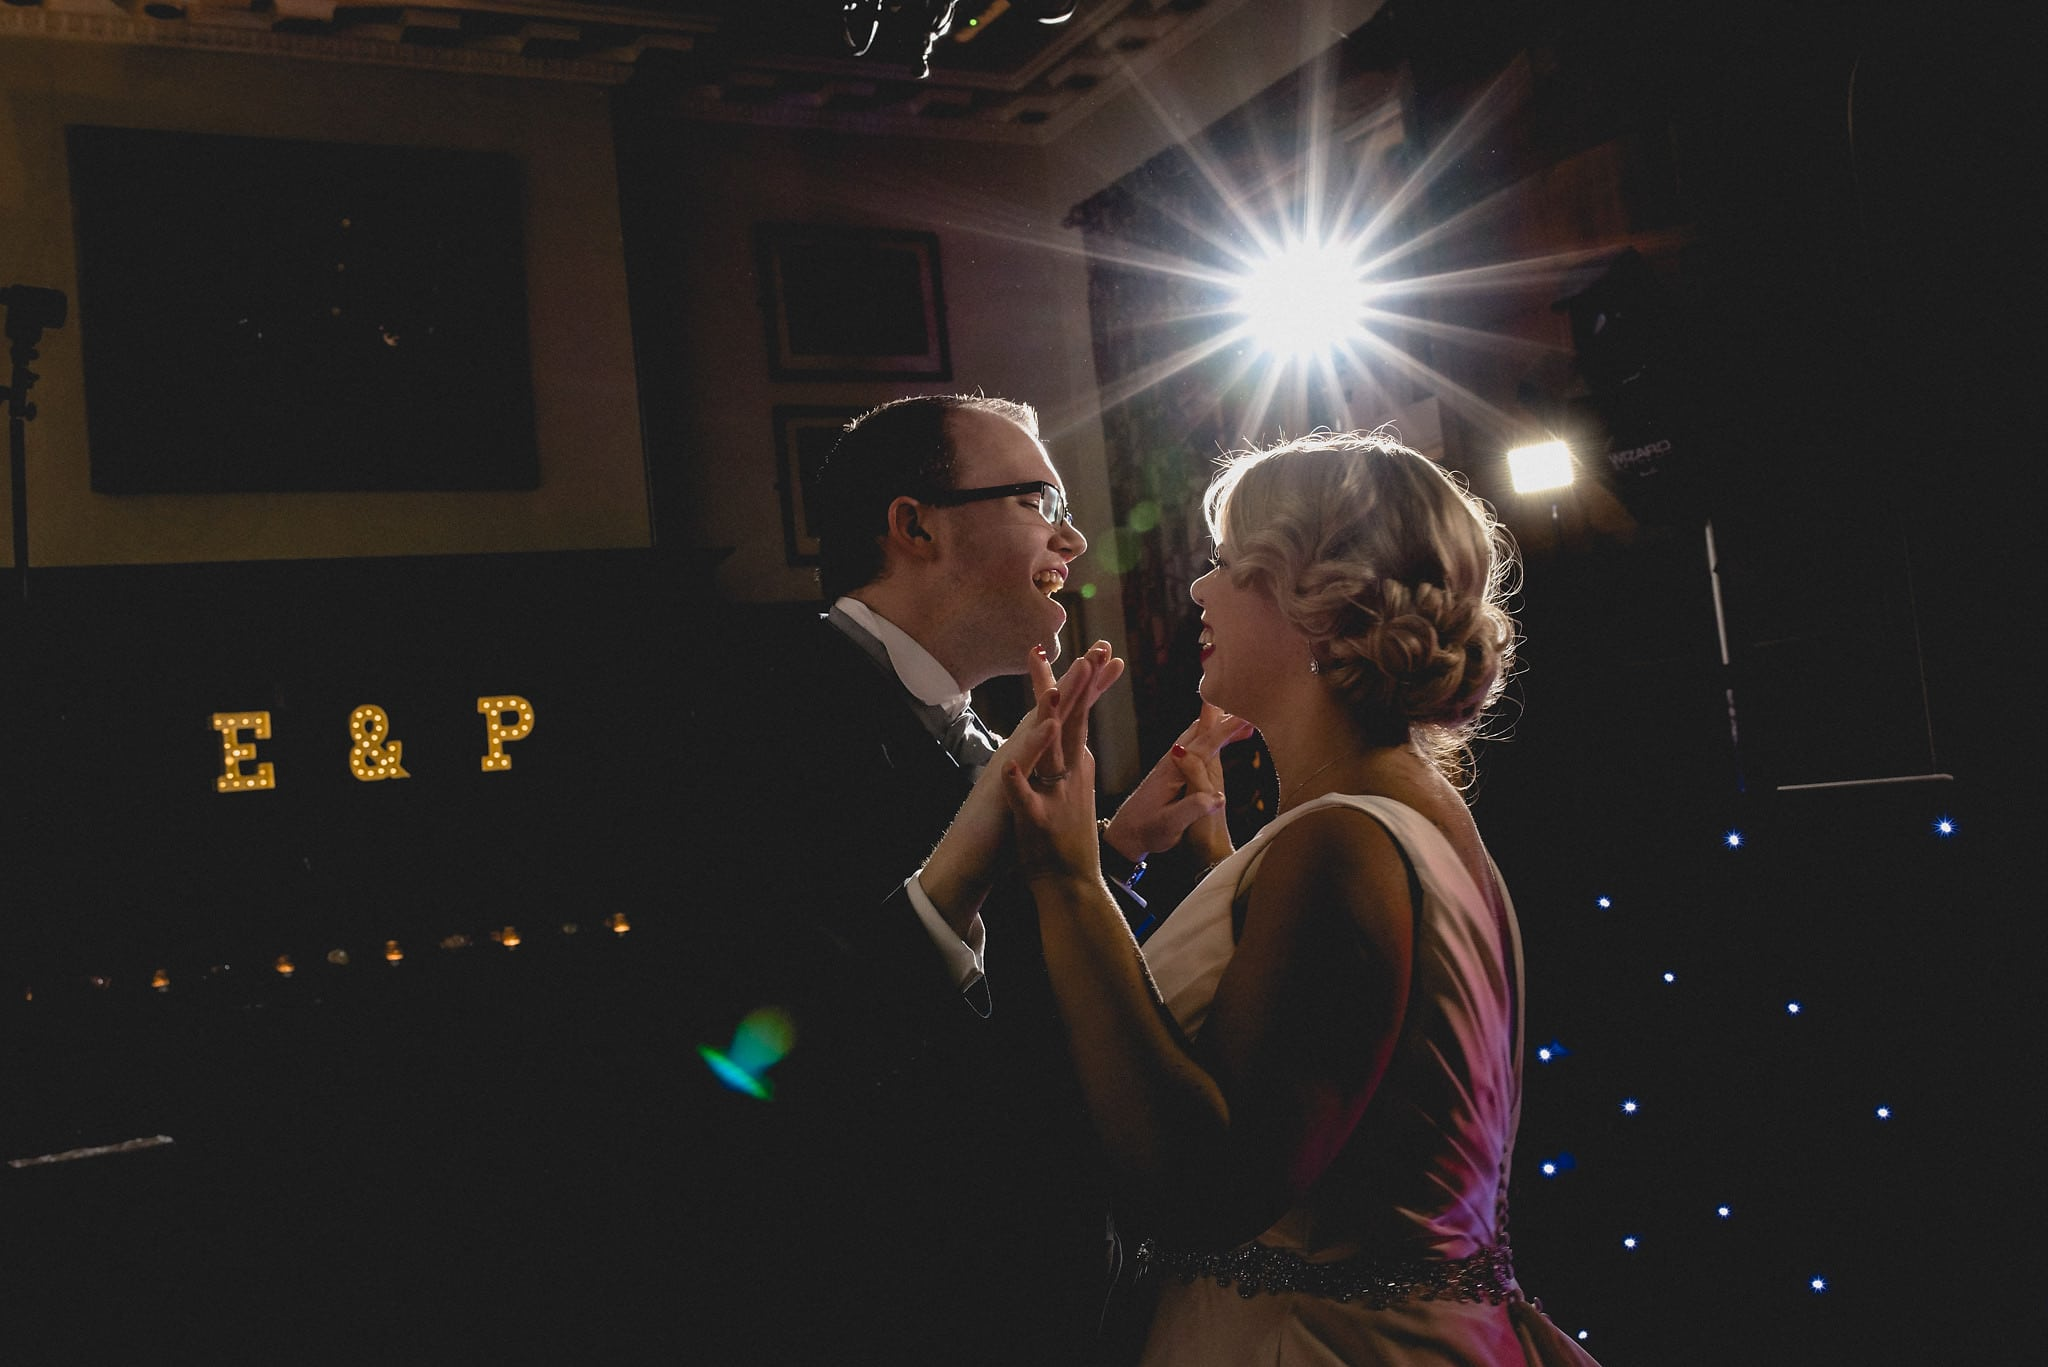 Bride and groom on dancefloor with light up initials in the background